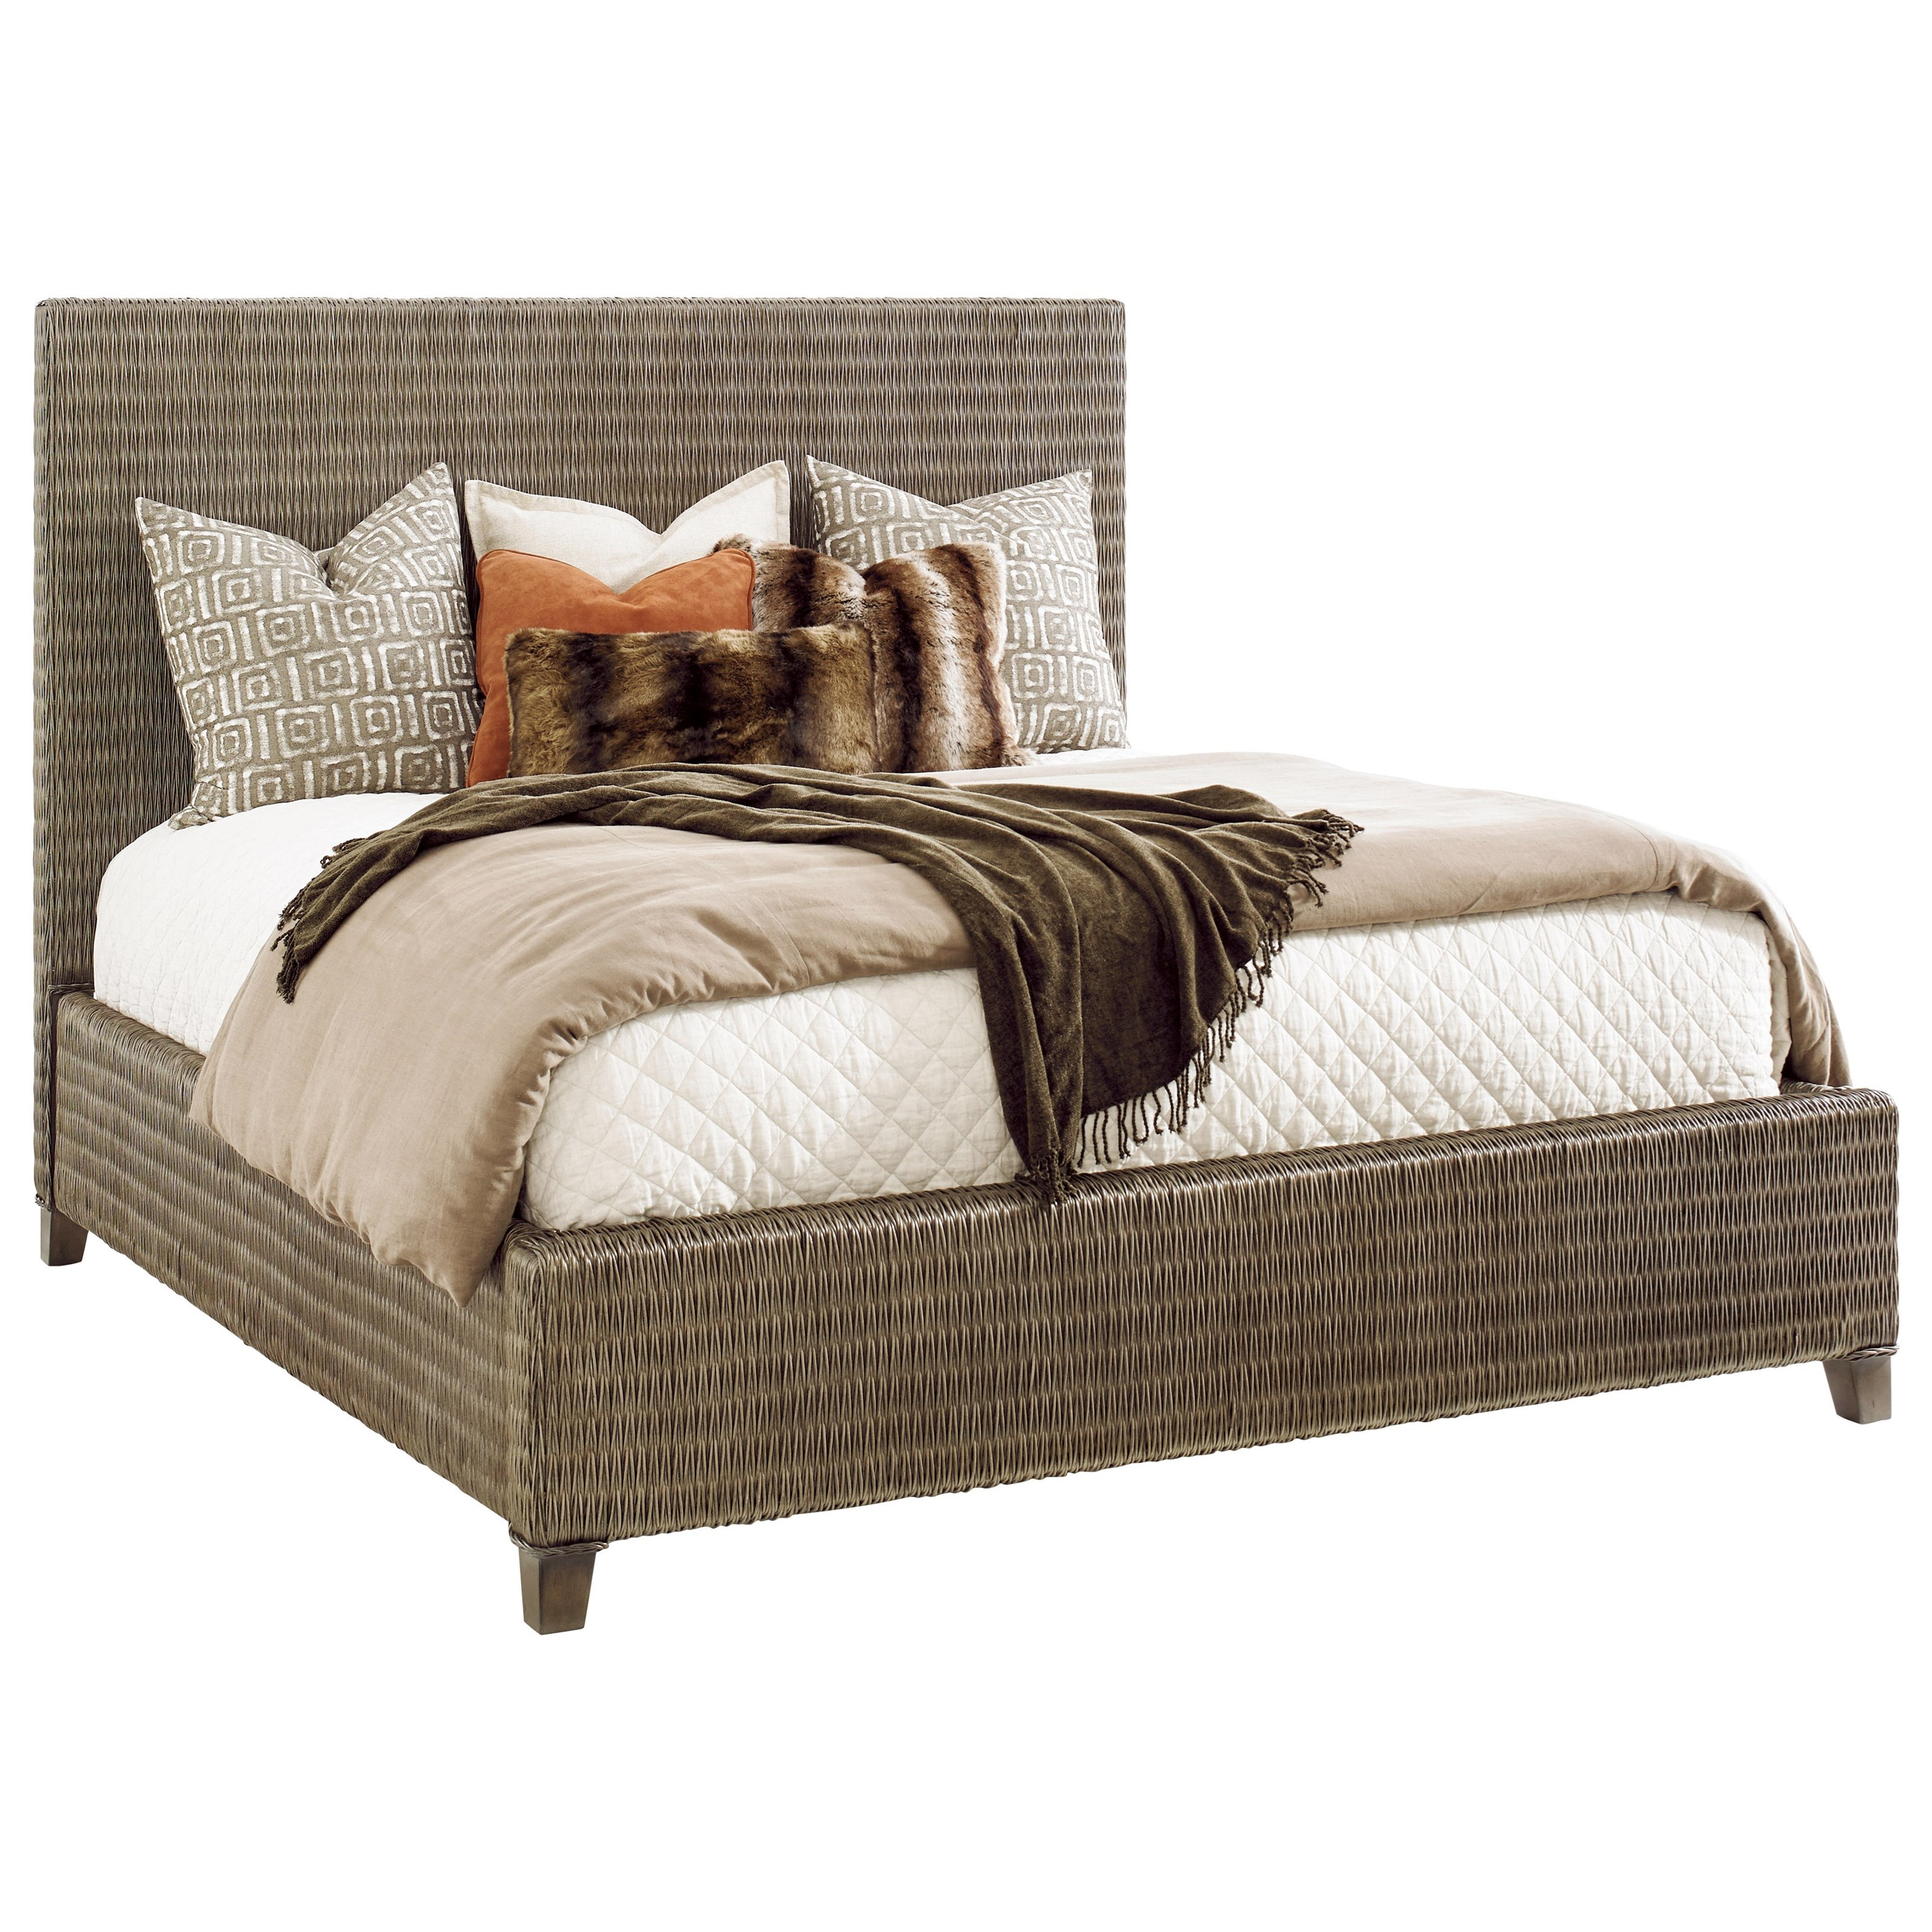 Tommy Bahama Home Cypress Point 562 133c Driftwood Isle Woven Wicker Platform Bed Queen Size Baer S Furniture Platform Beds Low Profile Beds